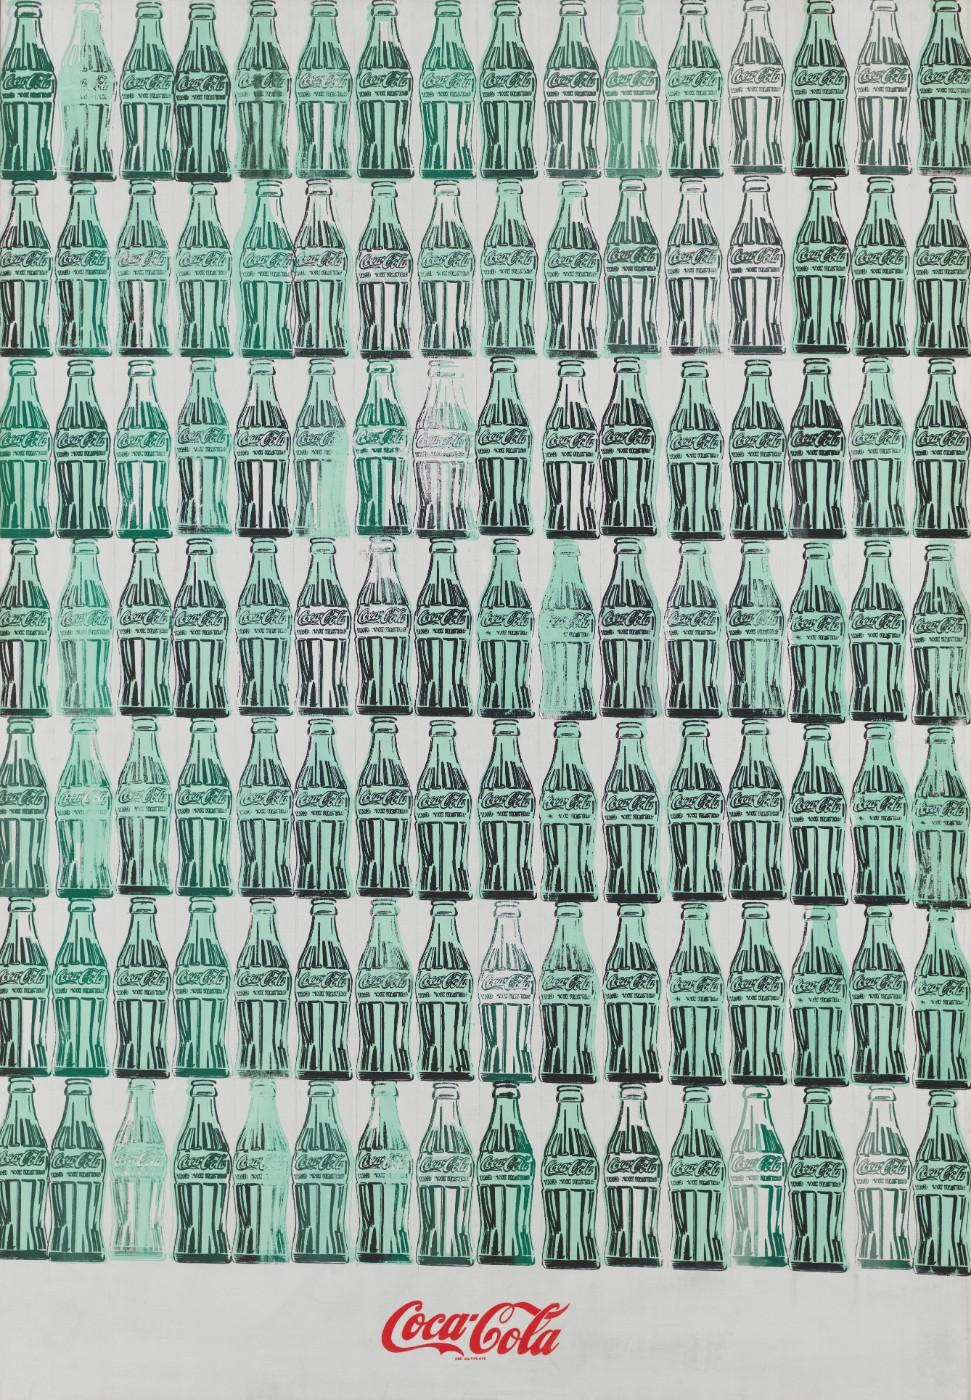 Andy Warhol (1928-1987), Green Coca-Cola Bottles, 1962